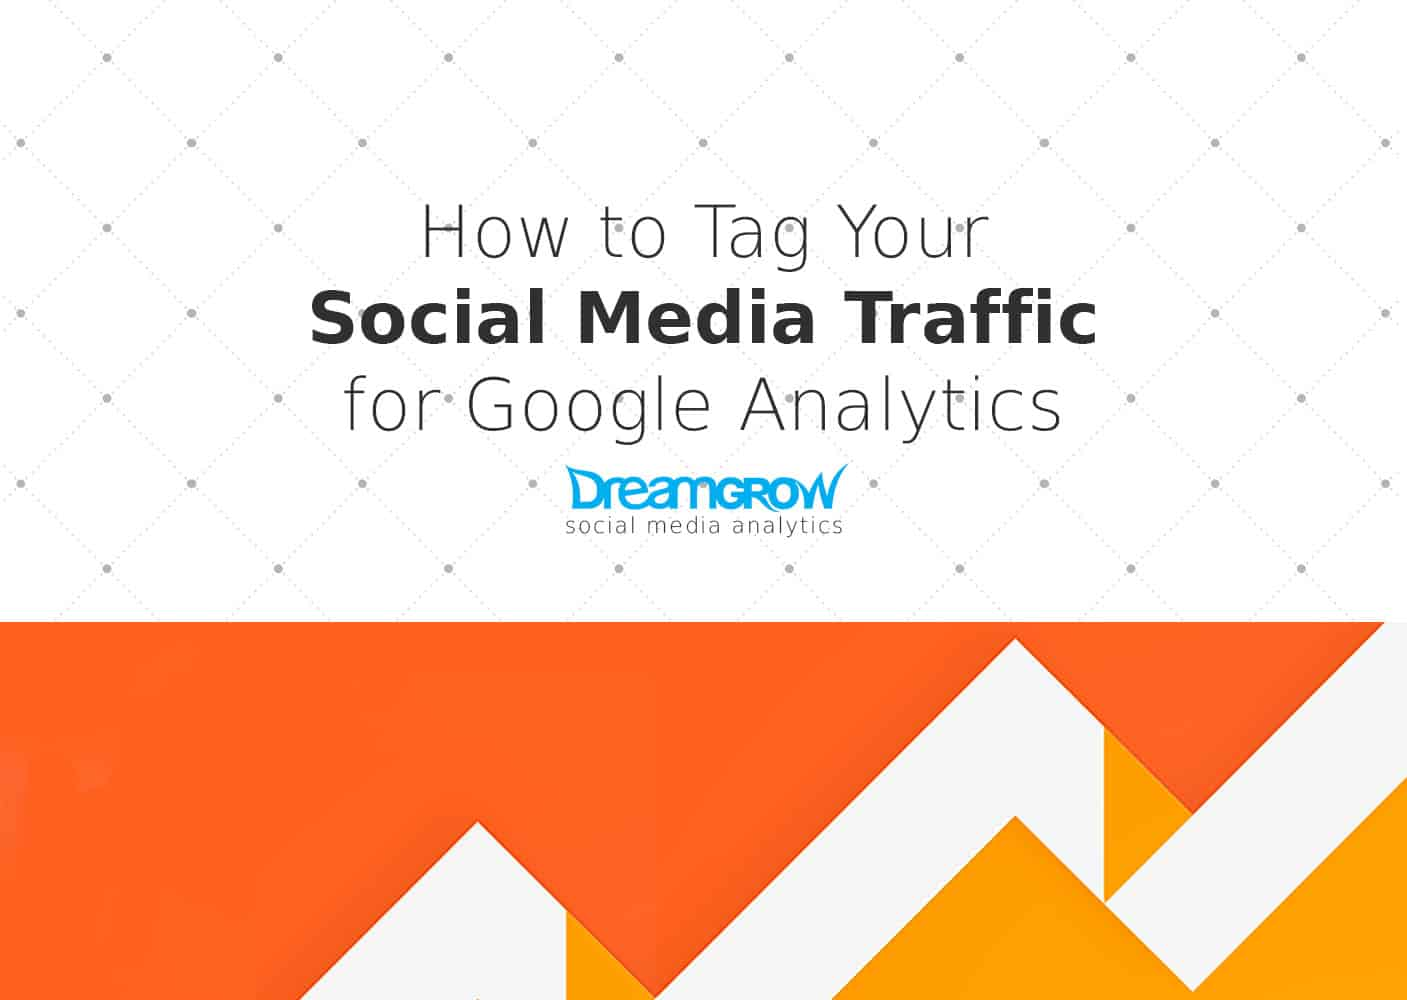 How To Tag Your Social Media Traffic For Google Analytics DreamGrow